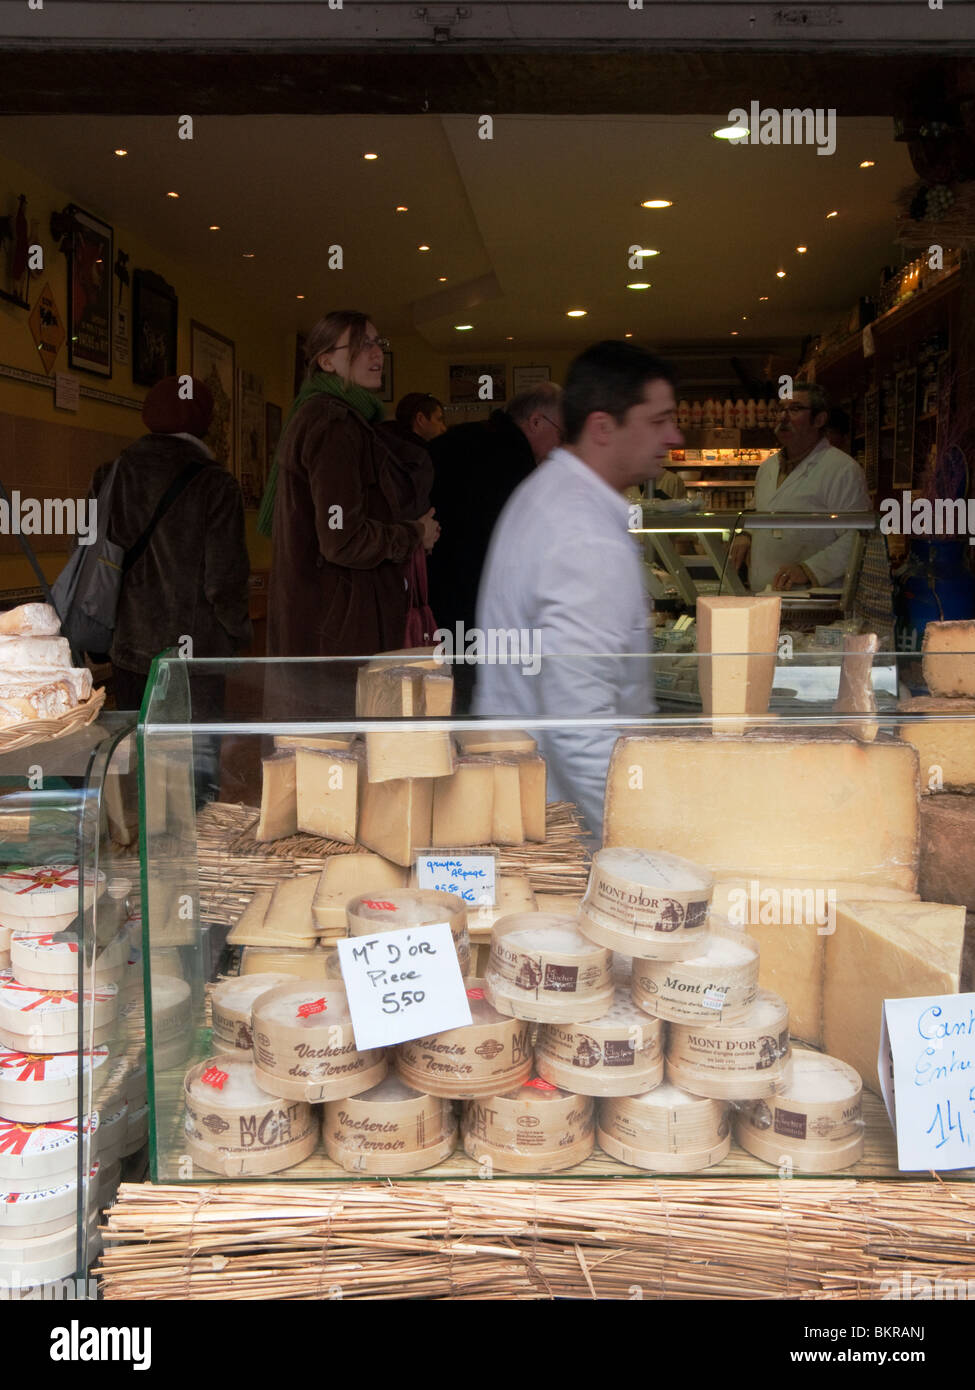 A market stall selling cheese in Paris, France. Stock Photo